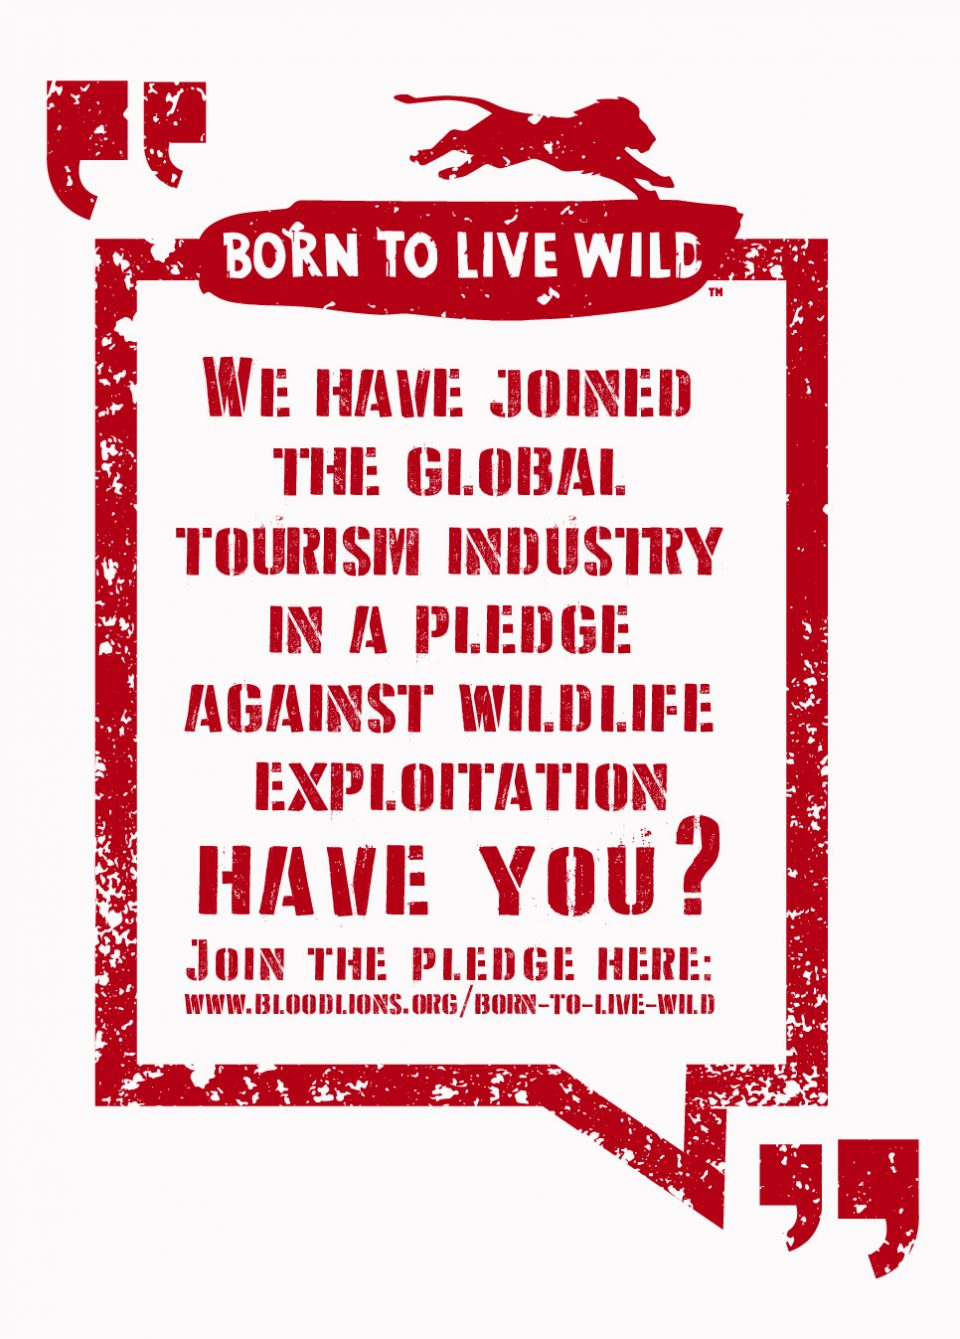 Born to live wild pledge - Support World Lion Day 2016